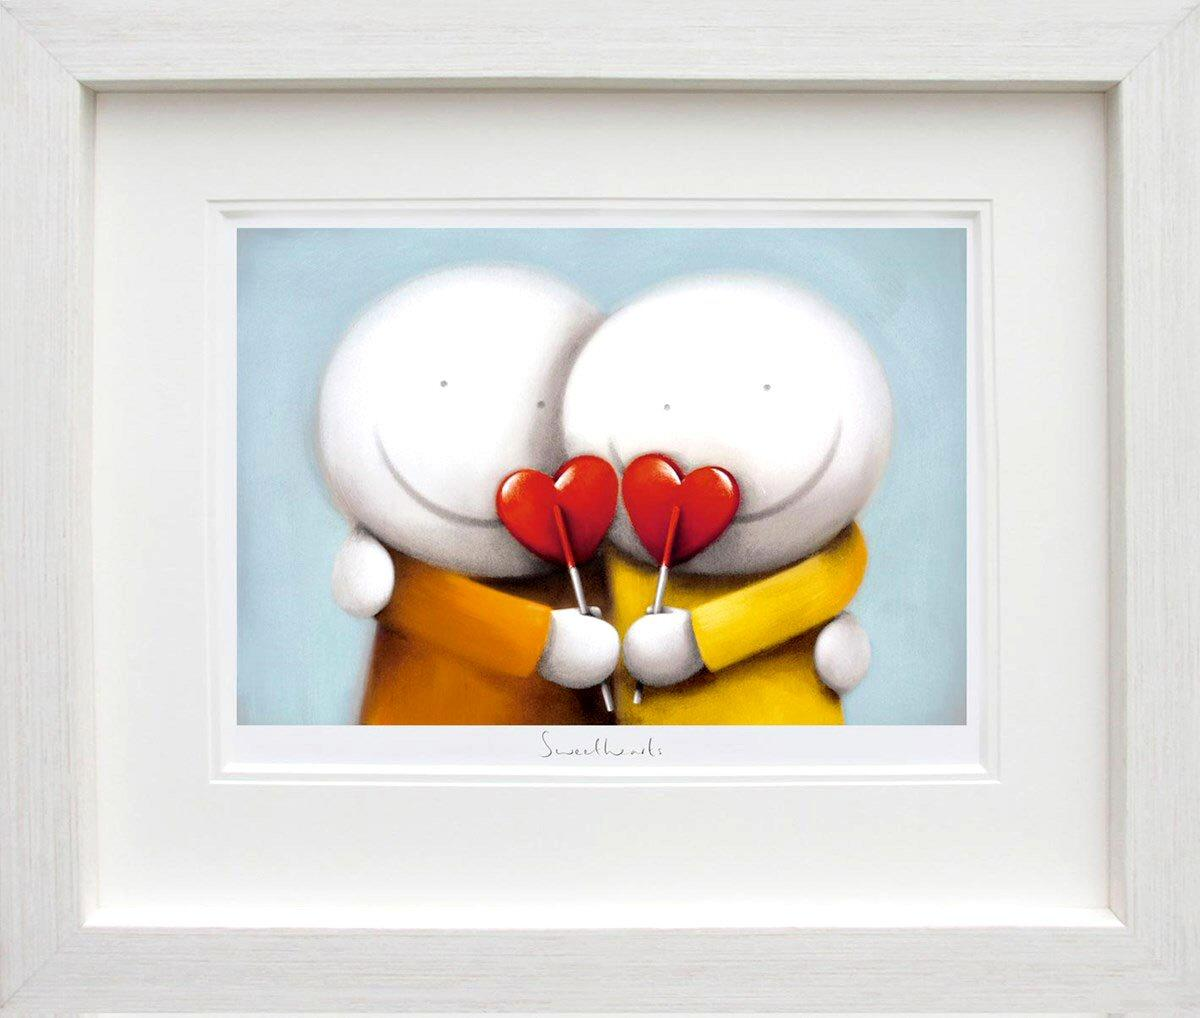 Sweethearts by Doug Hyde - DeMontfort ZHYD641 - framed